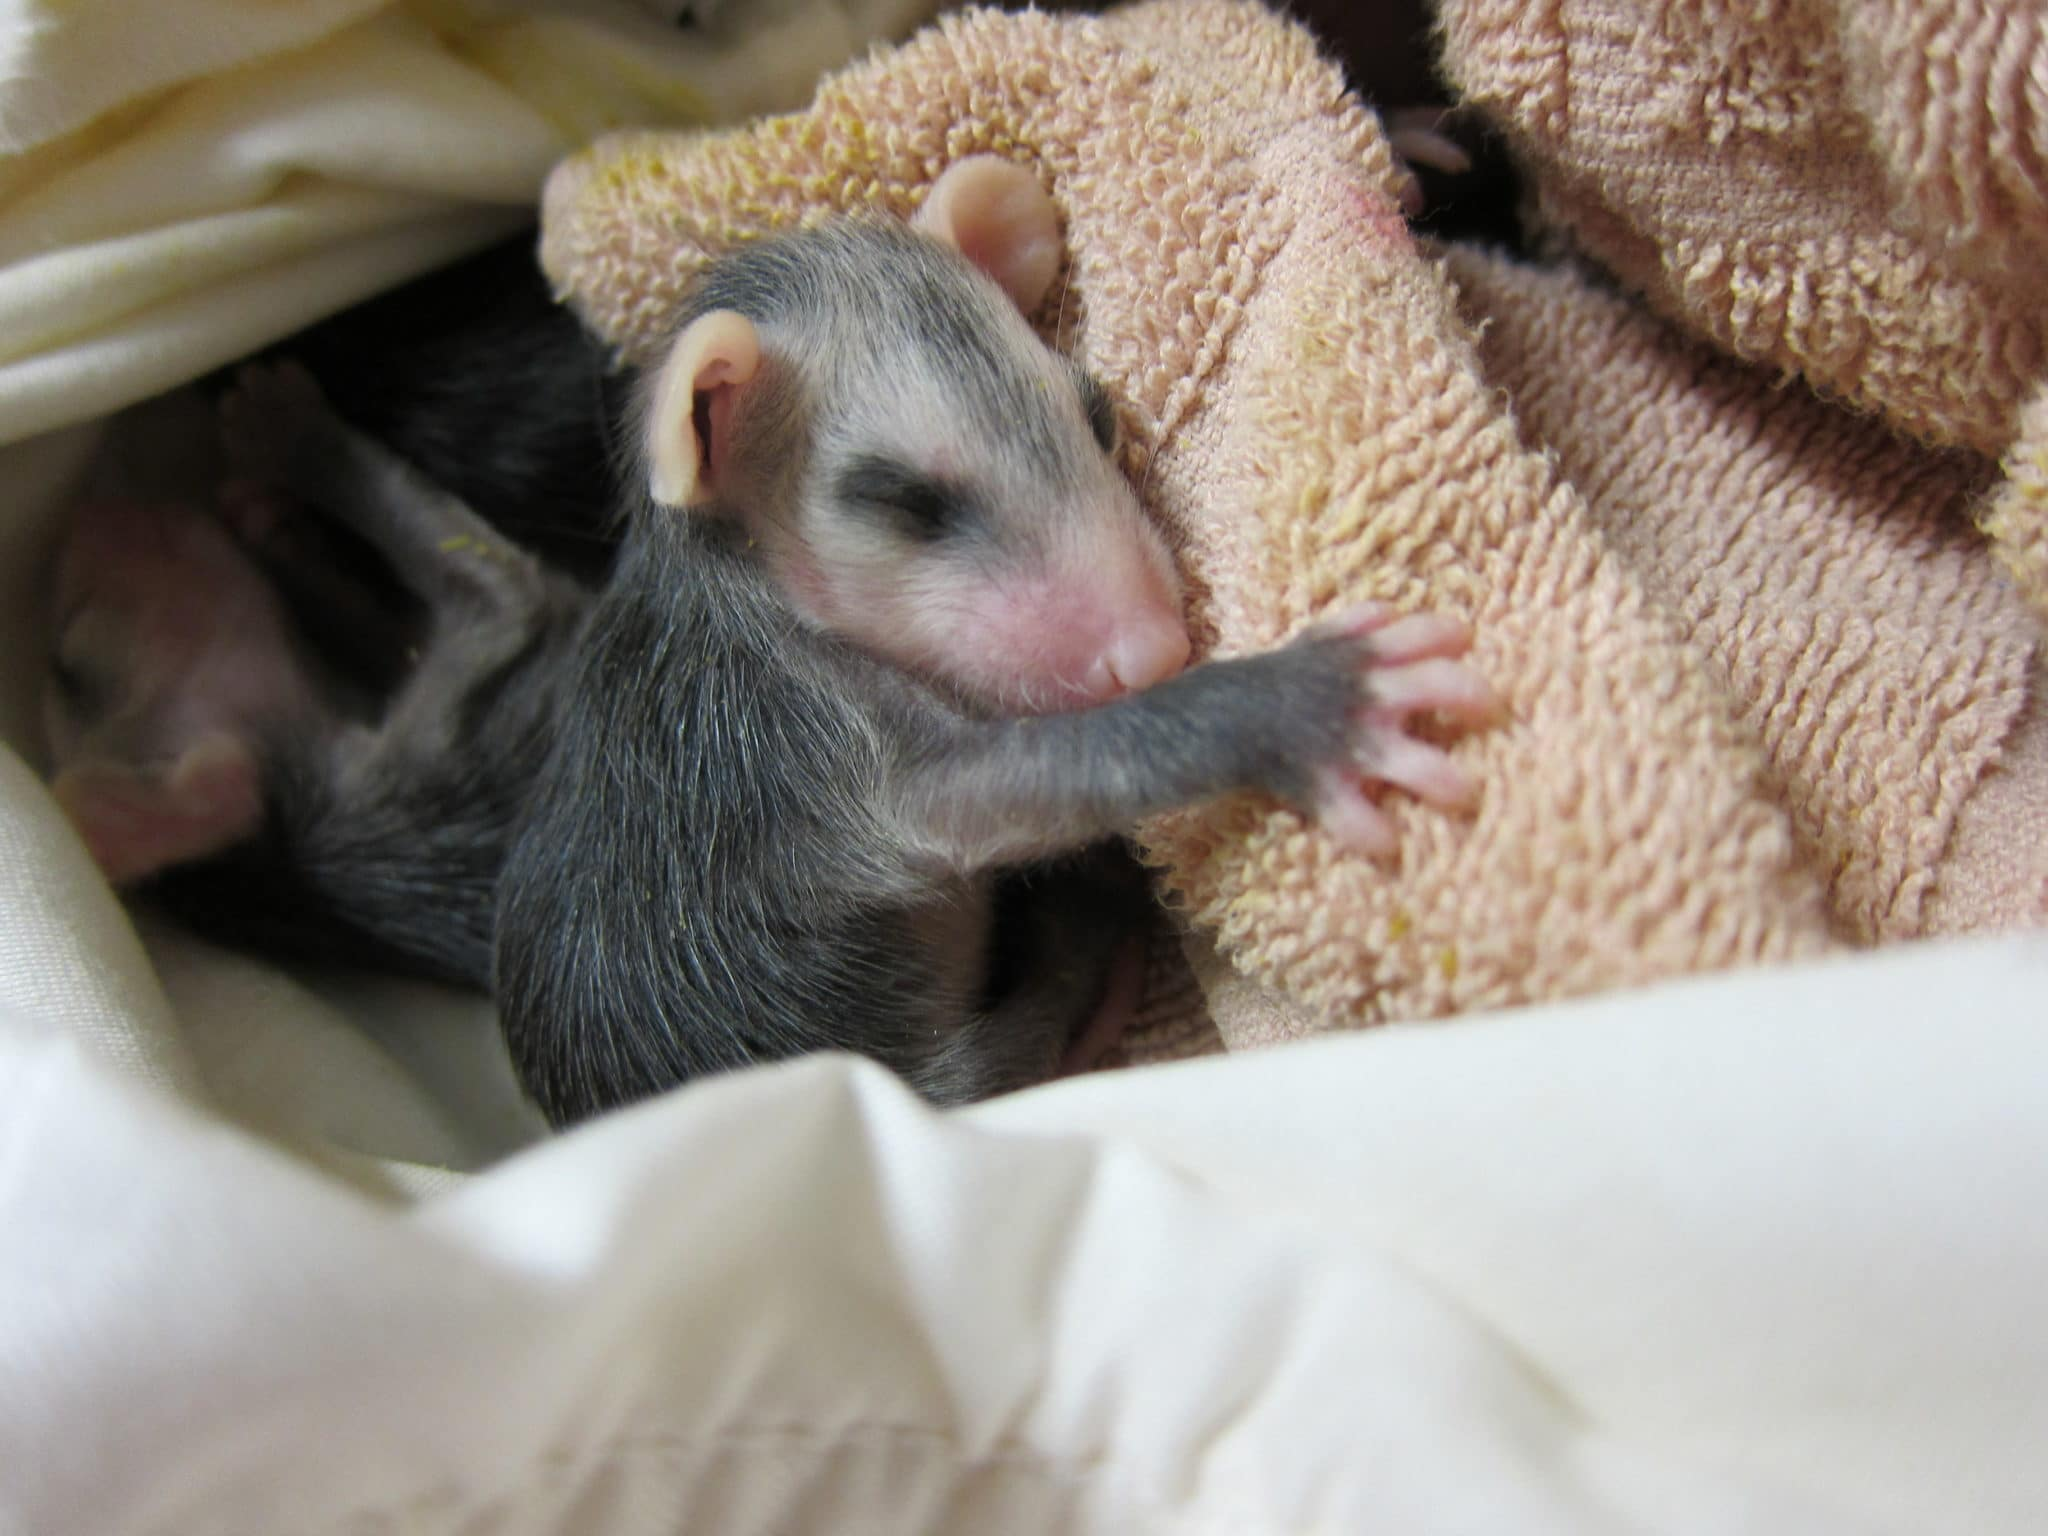 Opossum baby at WildCare. Photo by Alison Hermance